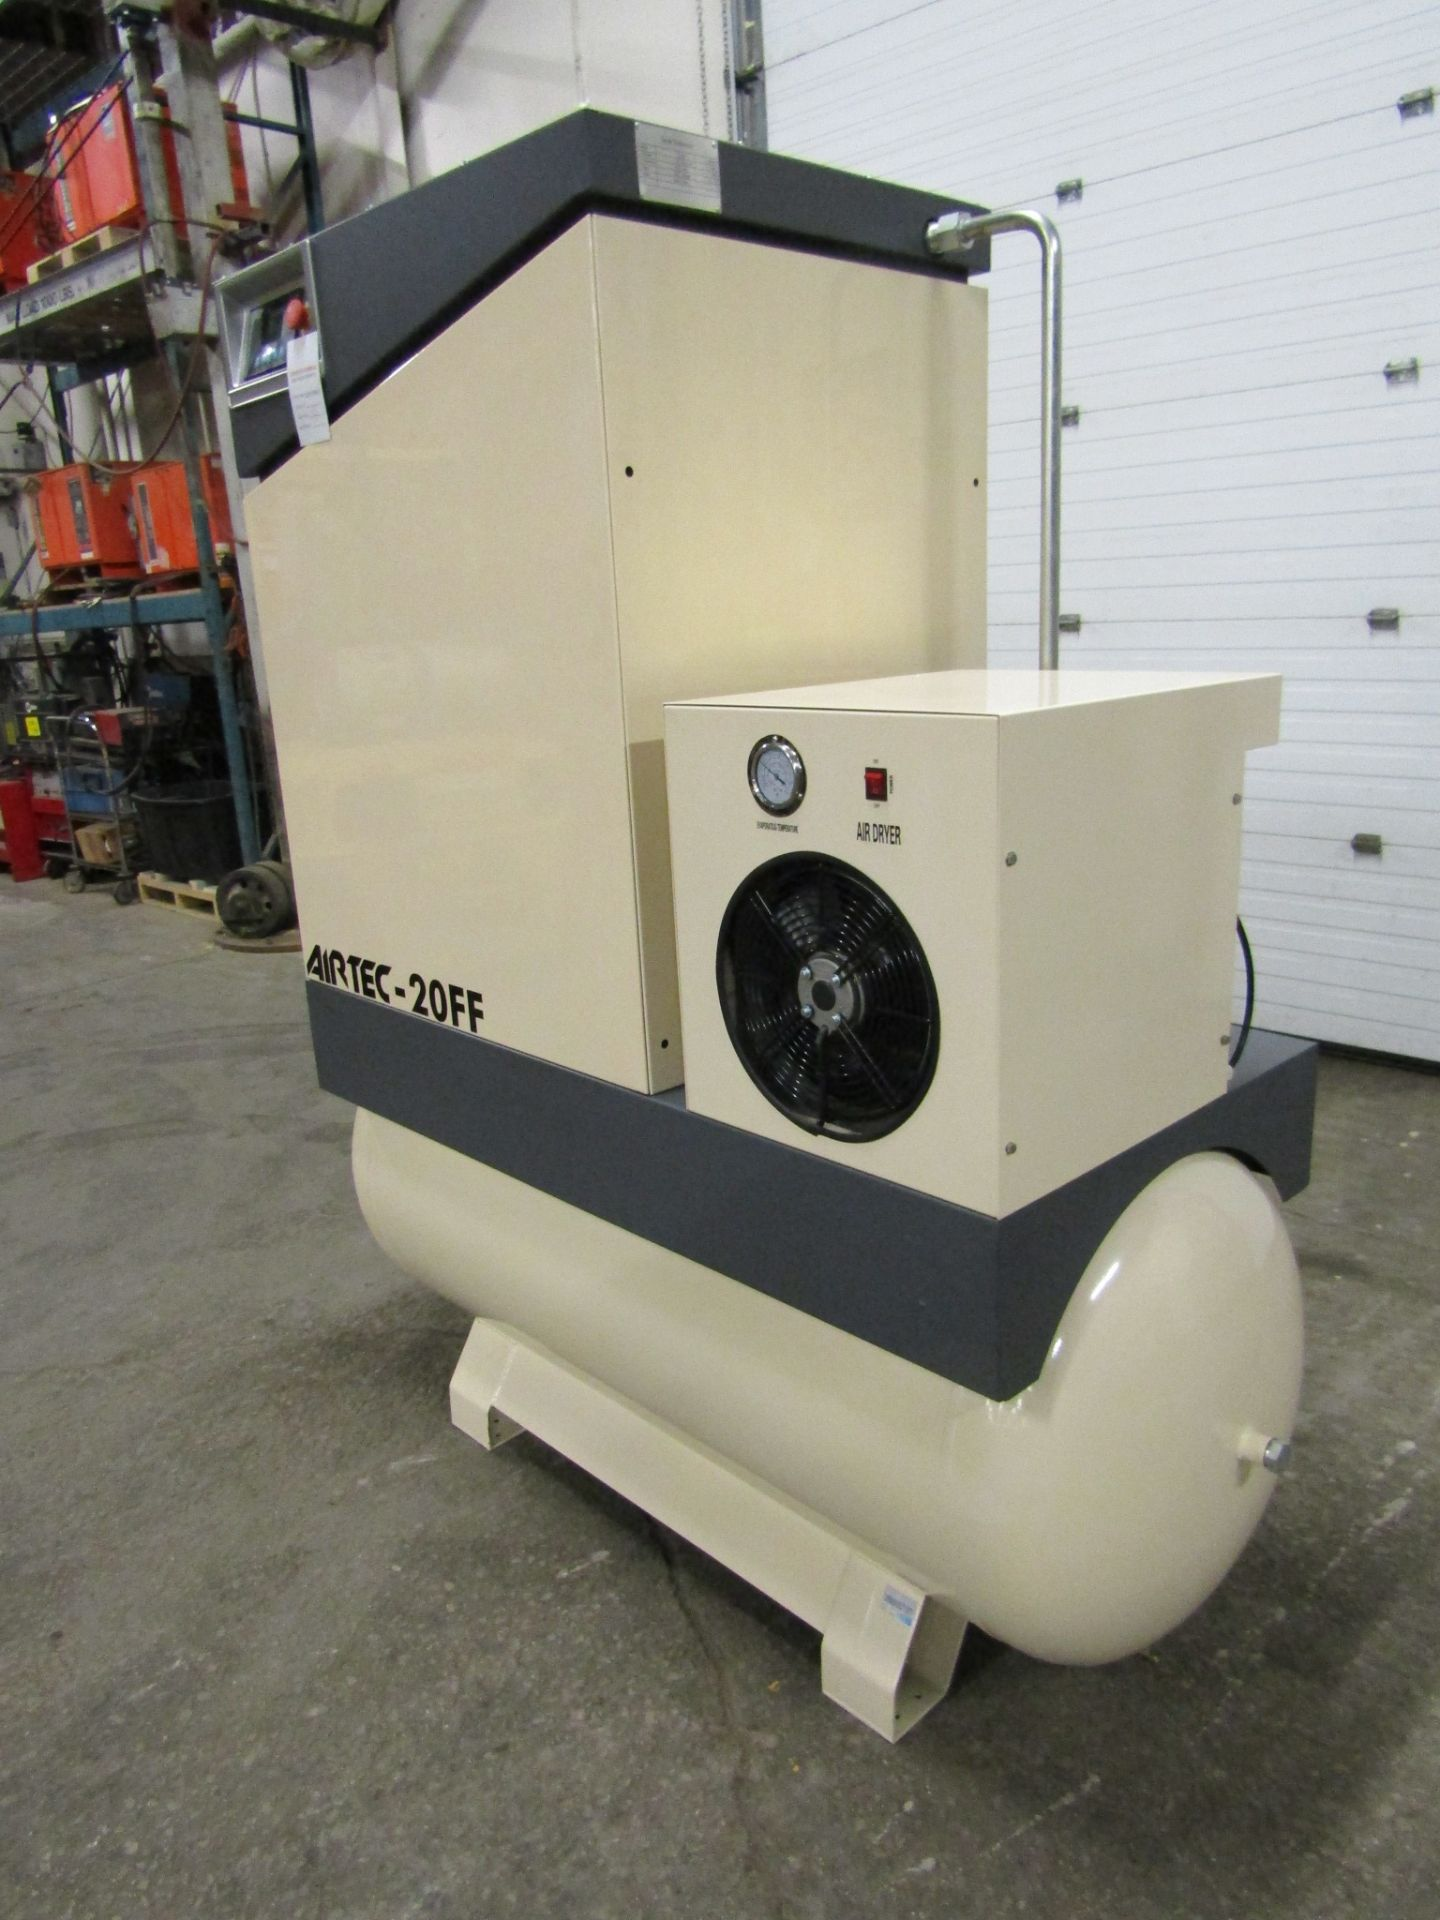 Lot 263 - Airtec model 20FF - 20HP Air Compressor with built on DRYER - MINT UNUSED COMPRESSOR with 125 Gallon